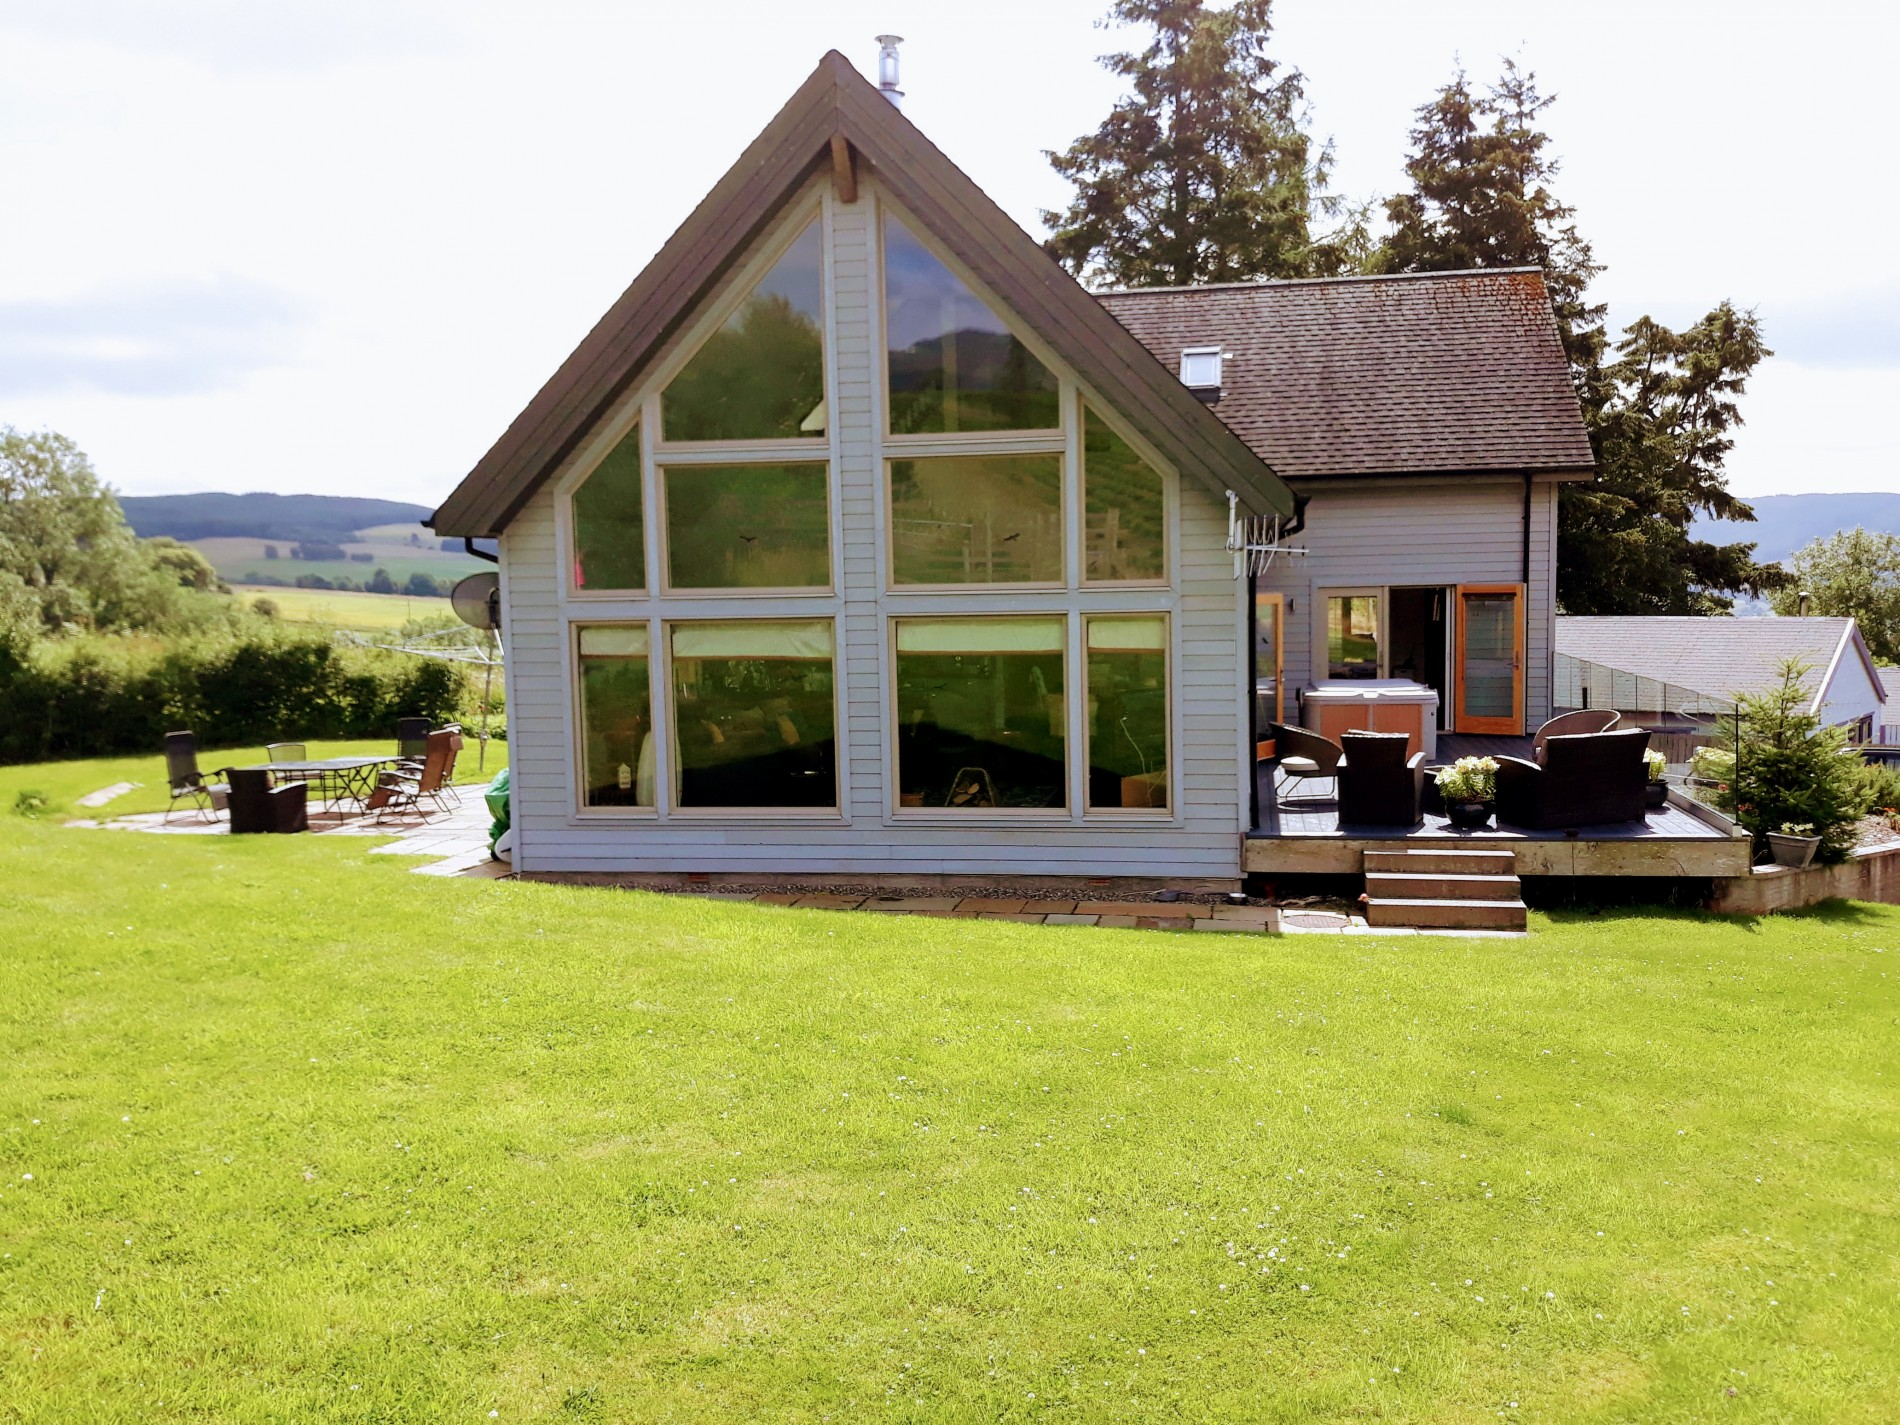 Our newest property - architect-designed with hot tub, wood burner and under floor heating